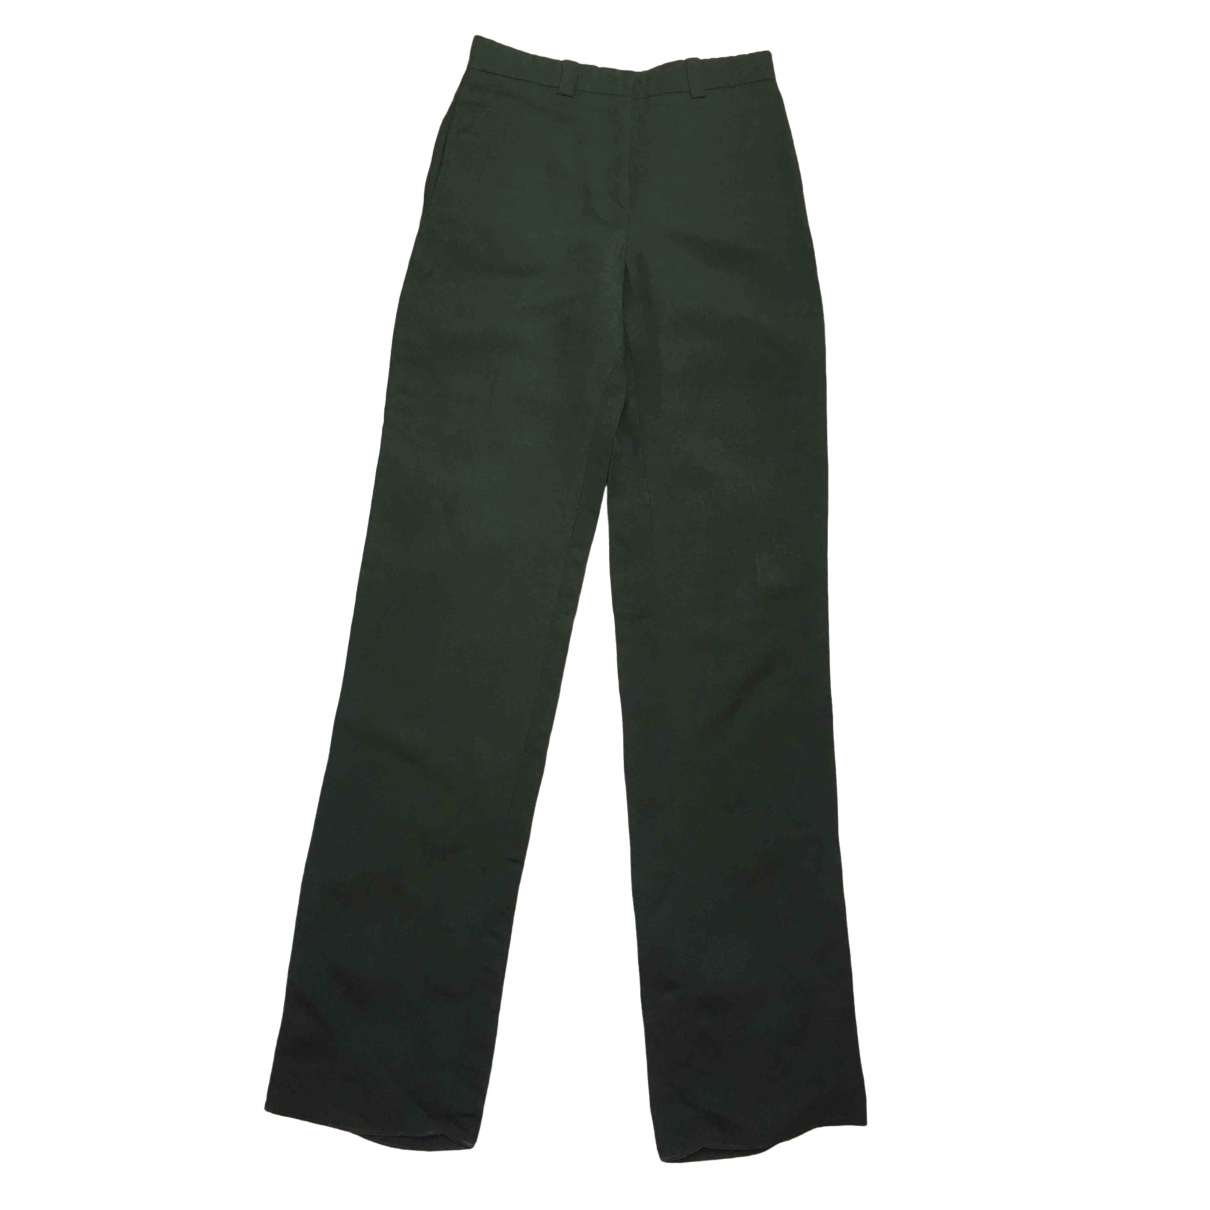 Emilio Pucci \N Green Linen Trousers for Women 38 IT